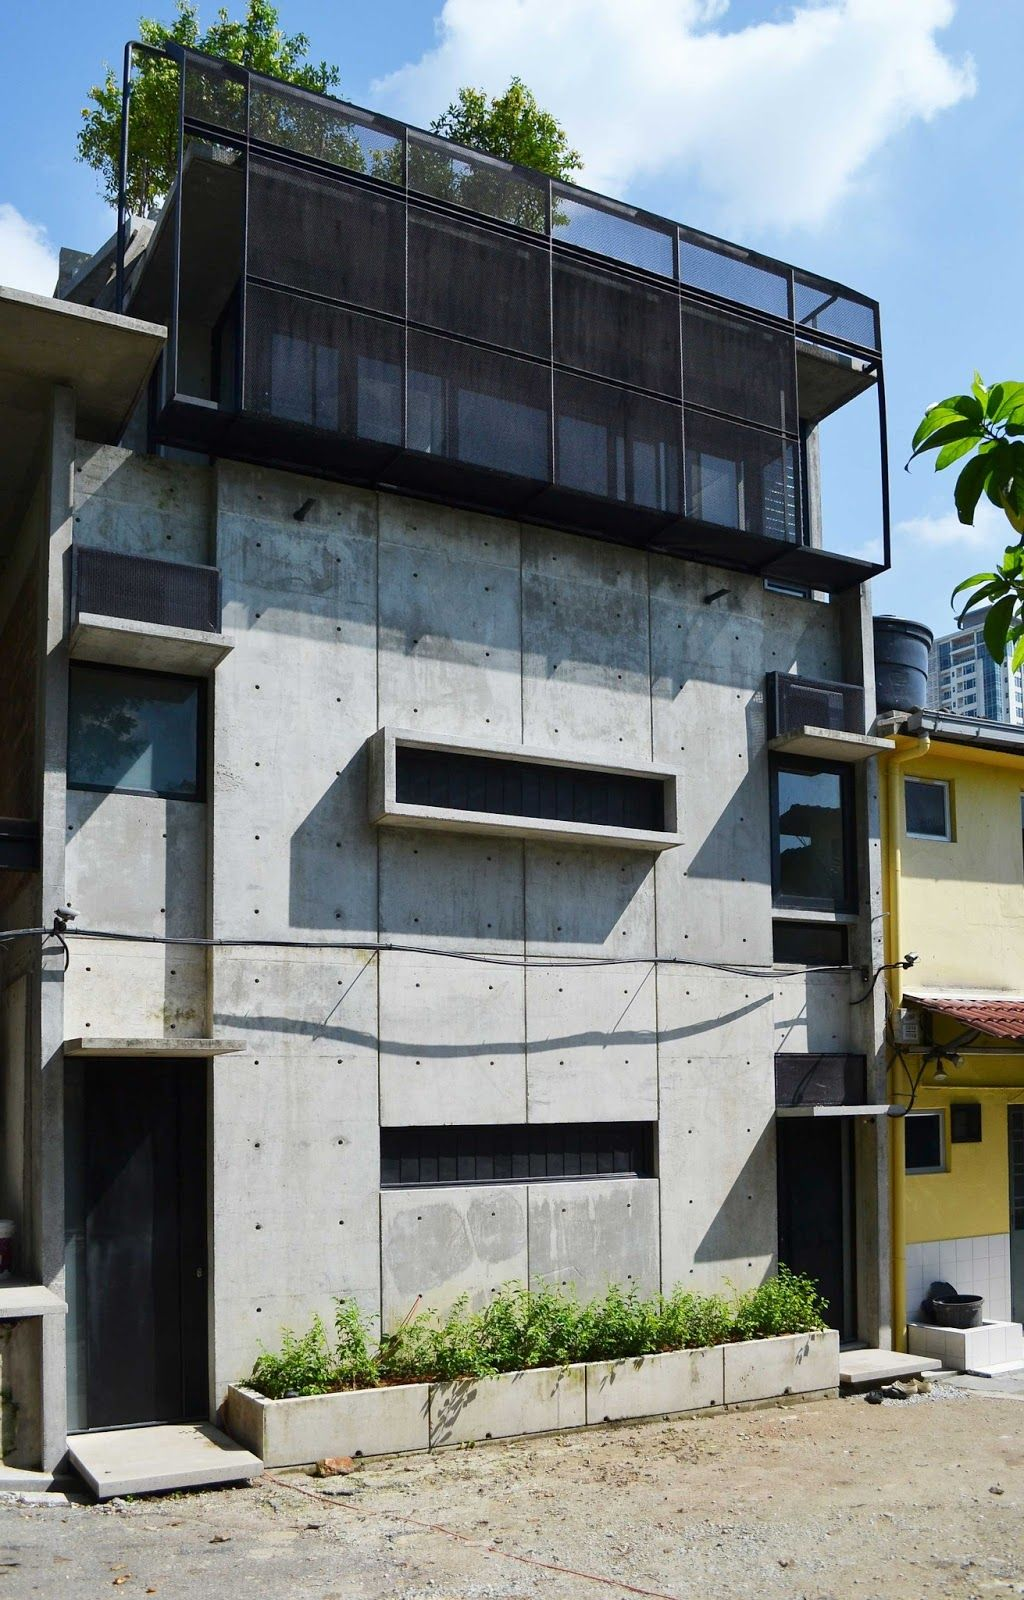 Duo Duplex Off Form Concrete Wall Tetawowe Atelier Concrete Wall Industrial House Front Courtyard